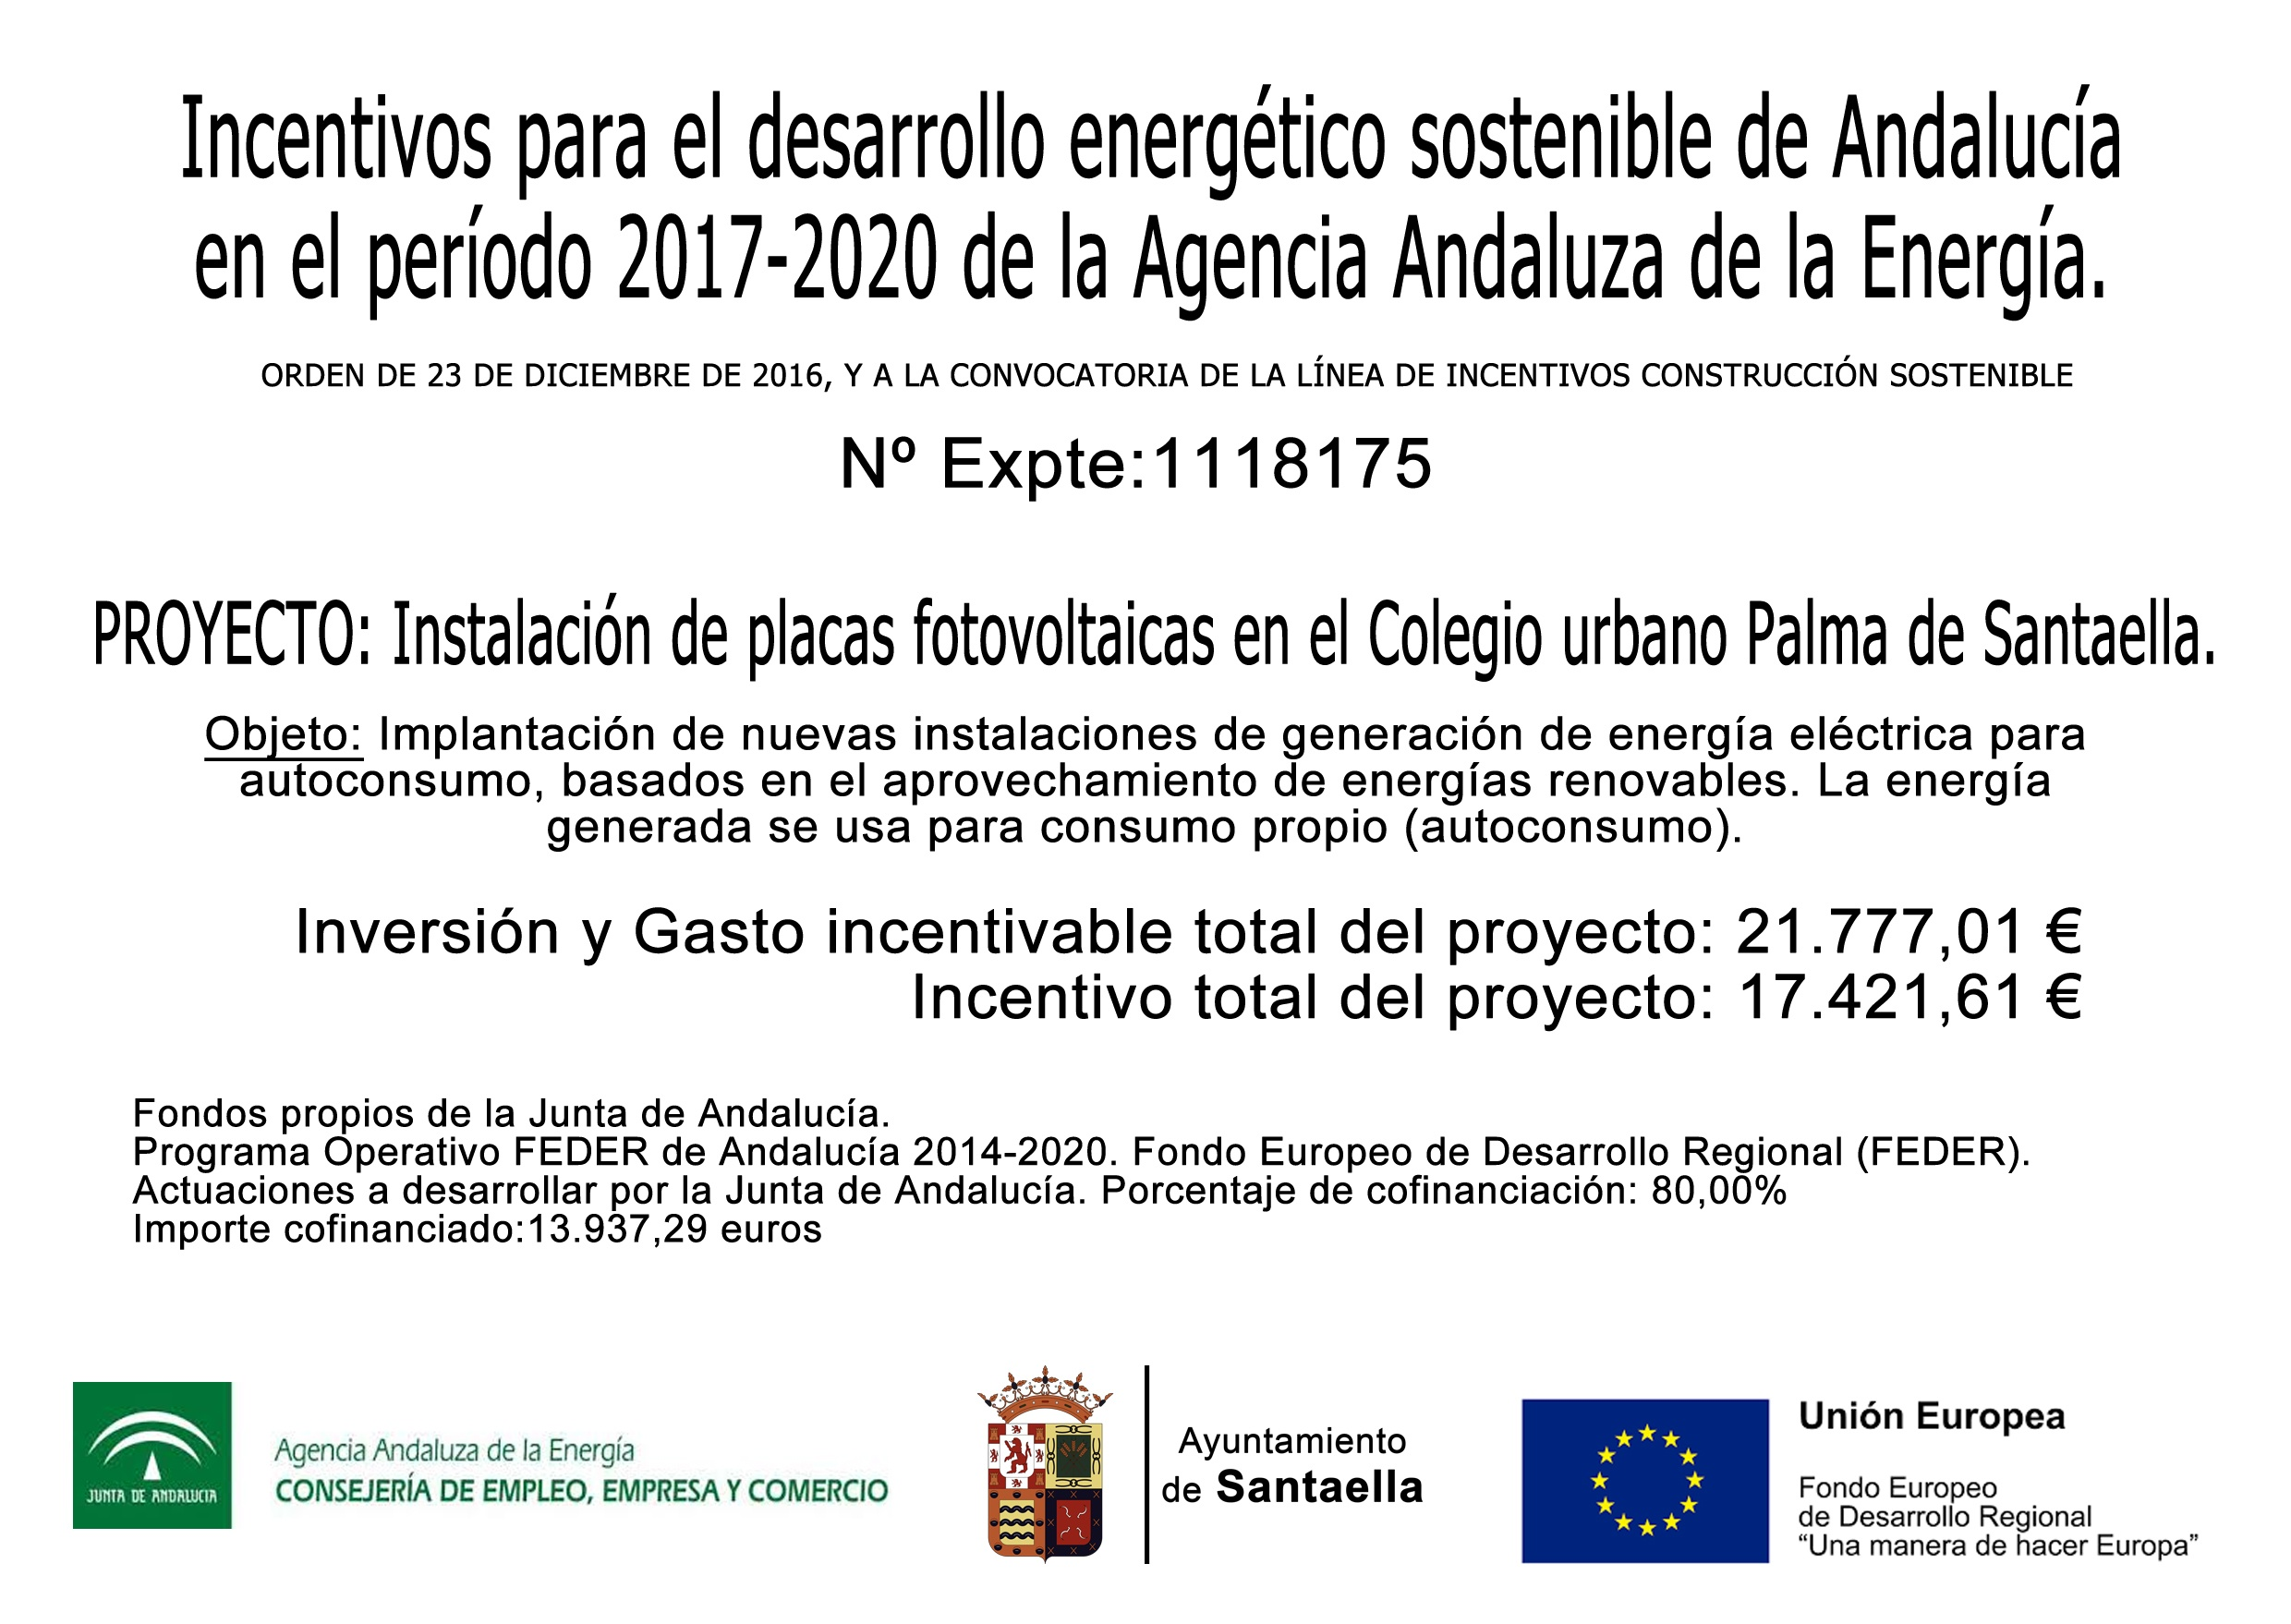 Cartel incentivos dearrollo energético sostenible expediente 1118175